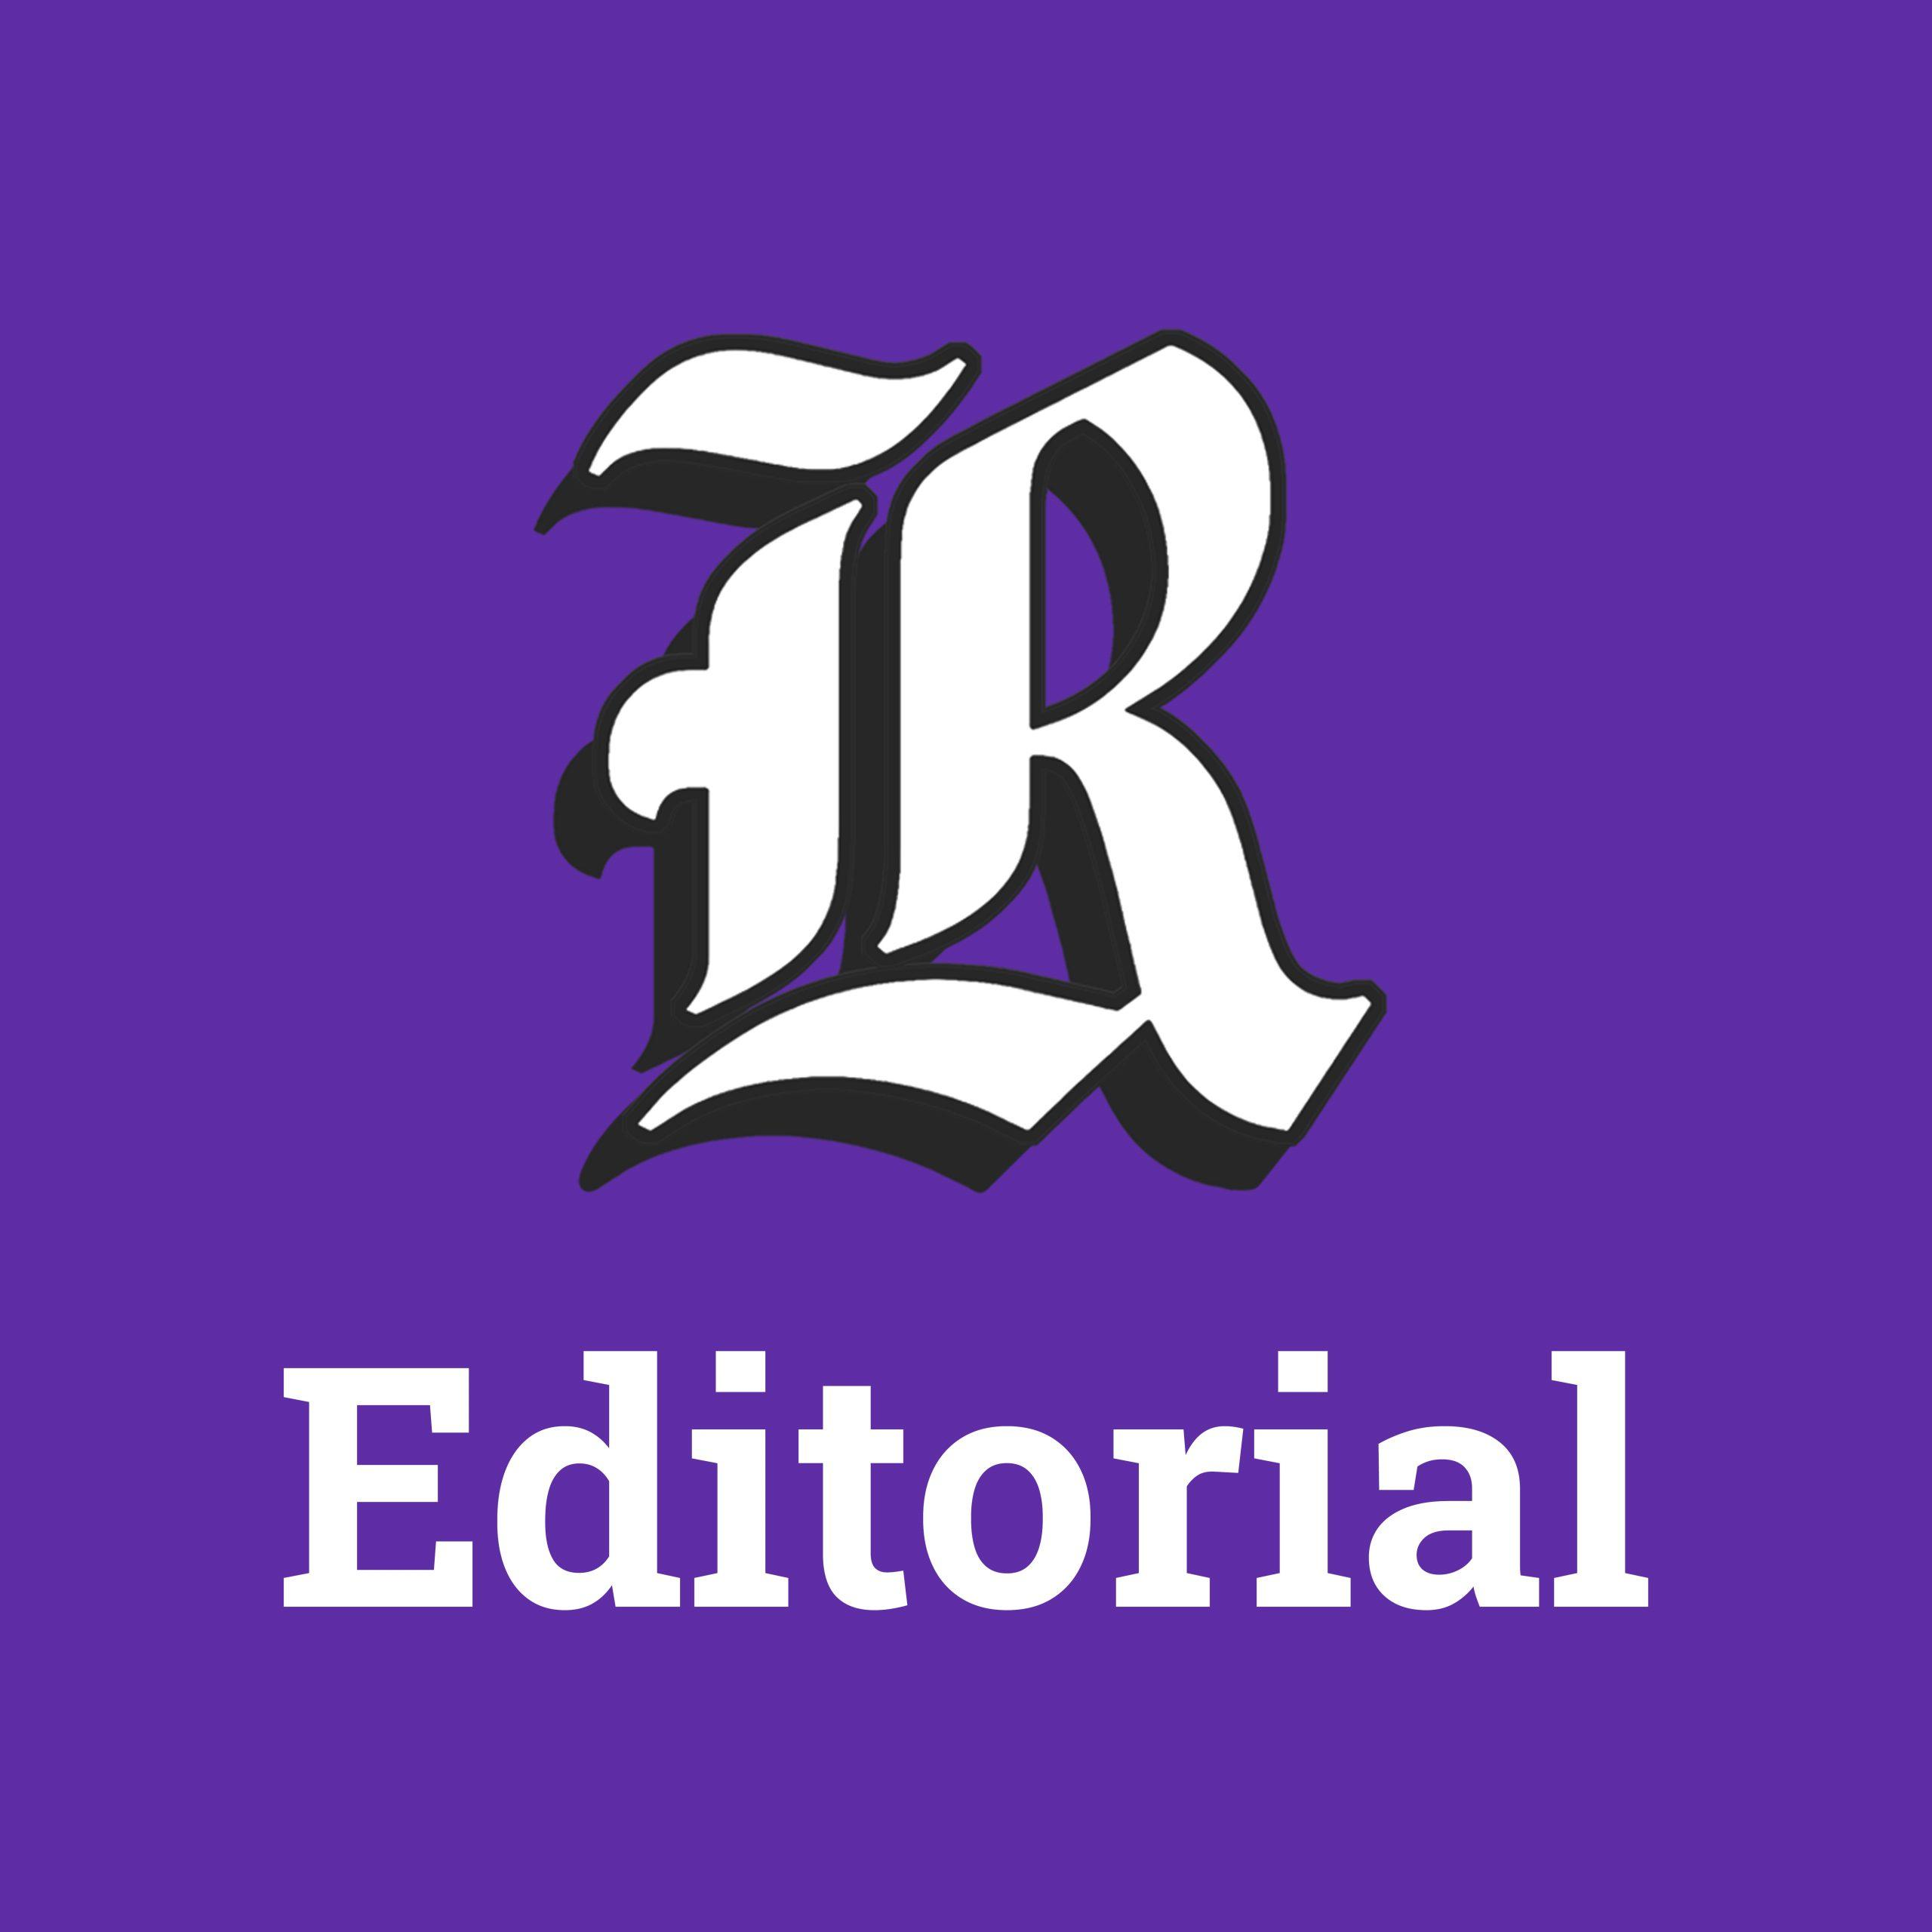 Editorial: Let's relax the limit on outdoor gatherings